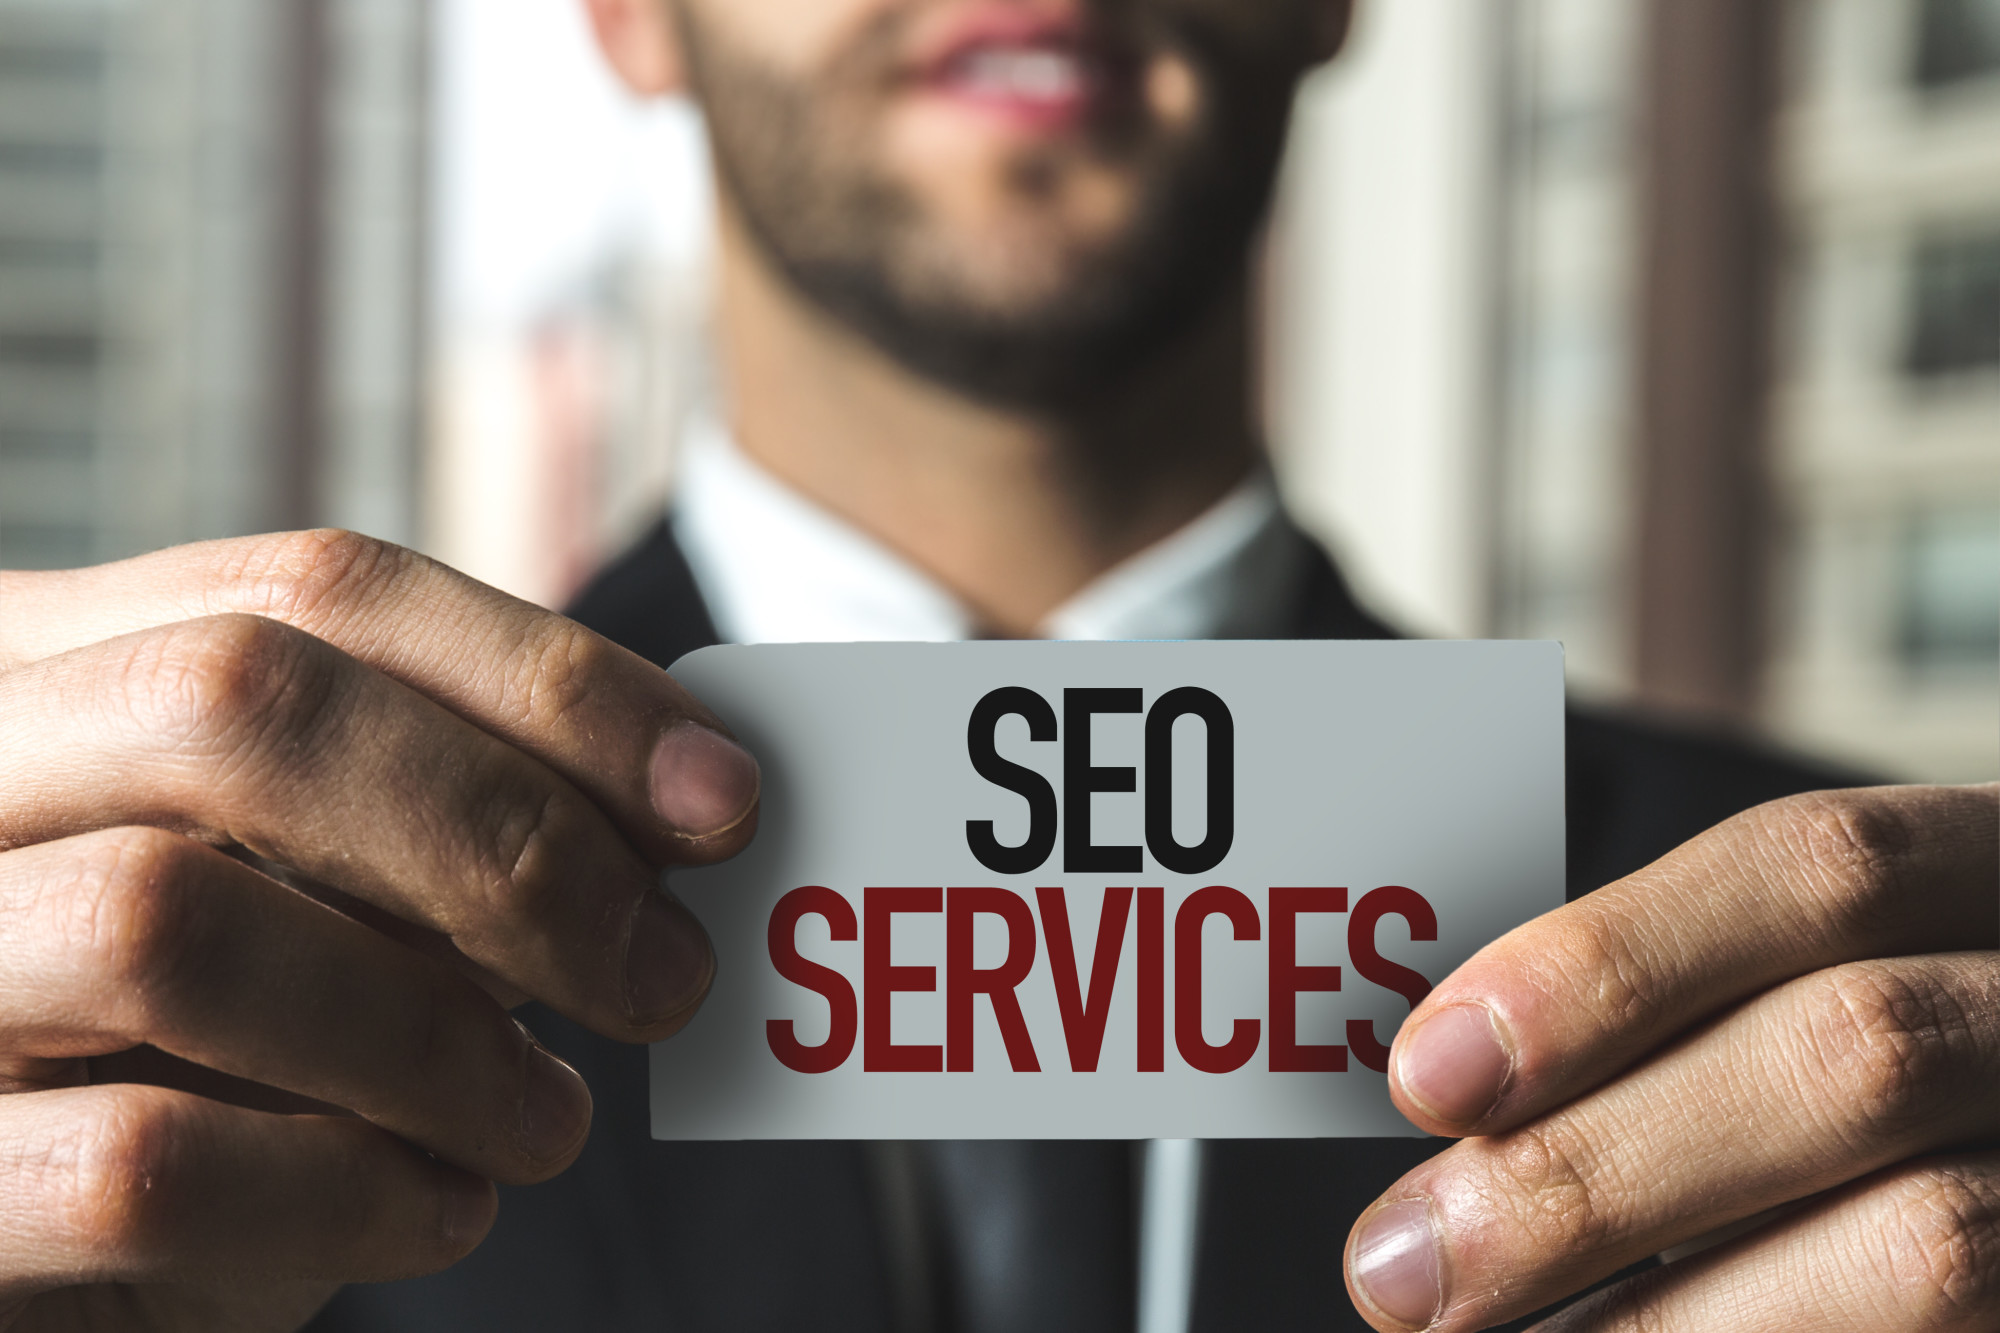 man holding seo services card